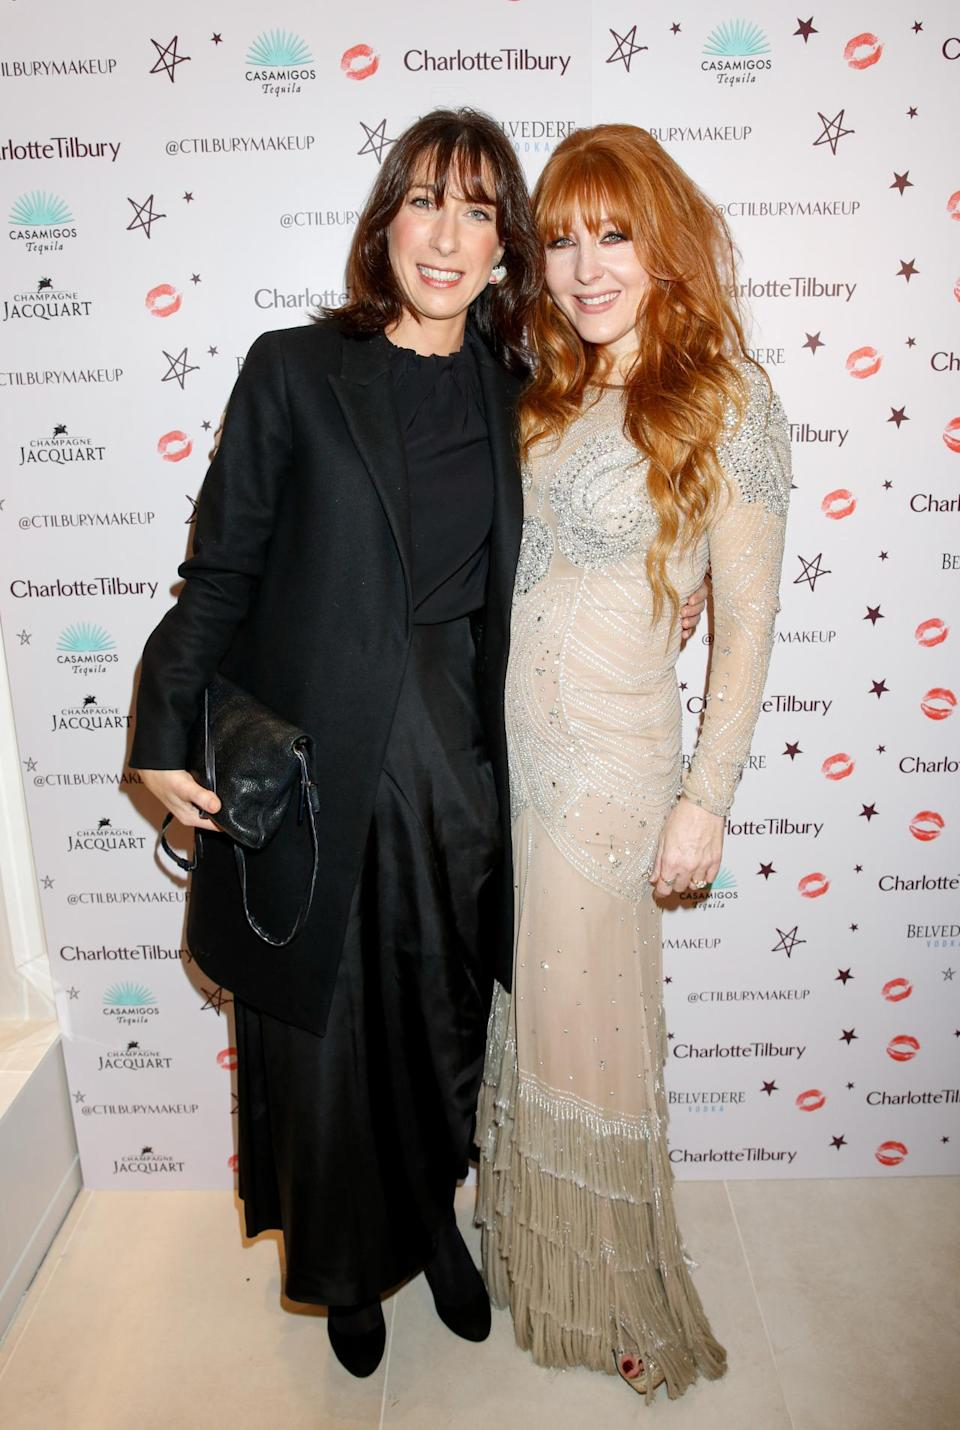 The lady of the house, Charlotte Tilbury, with Samantha Cameron. [Photo: Rex]